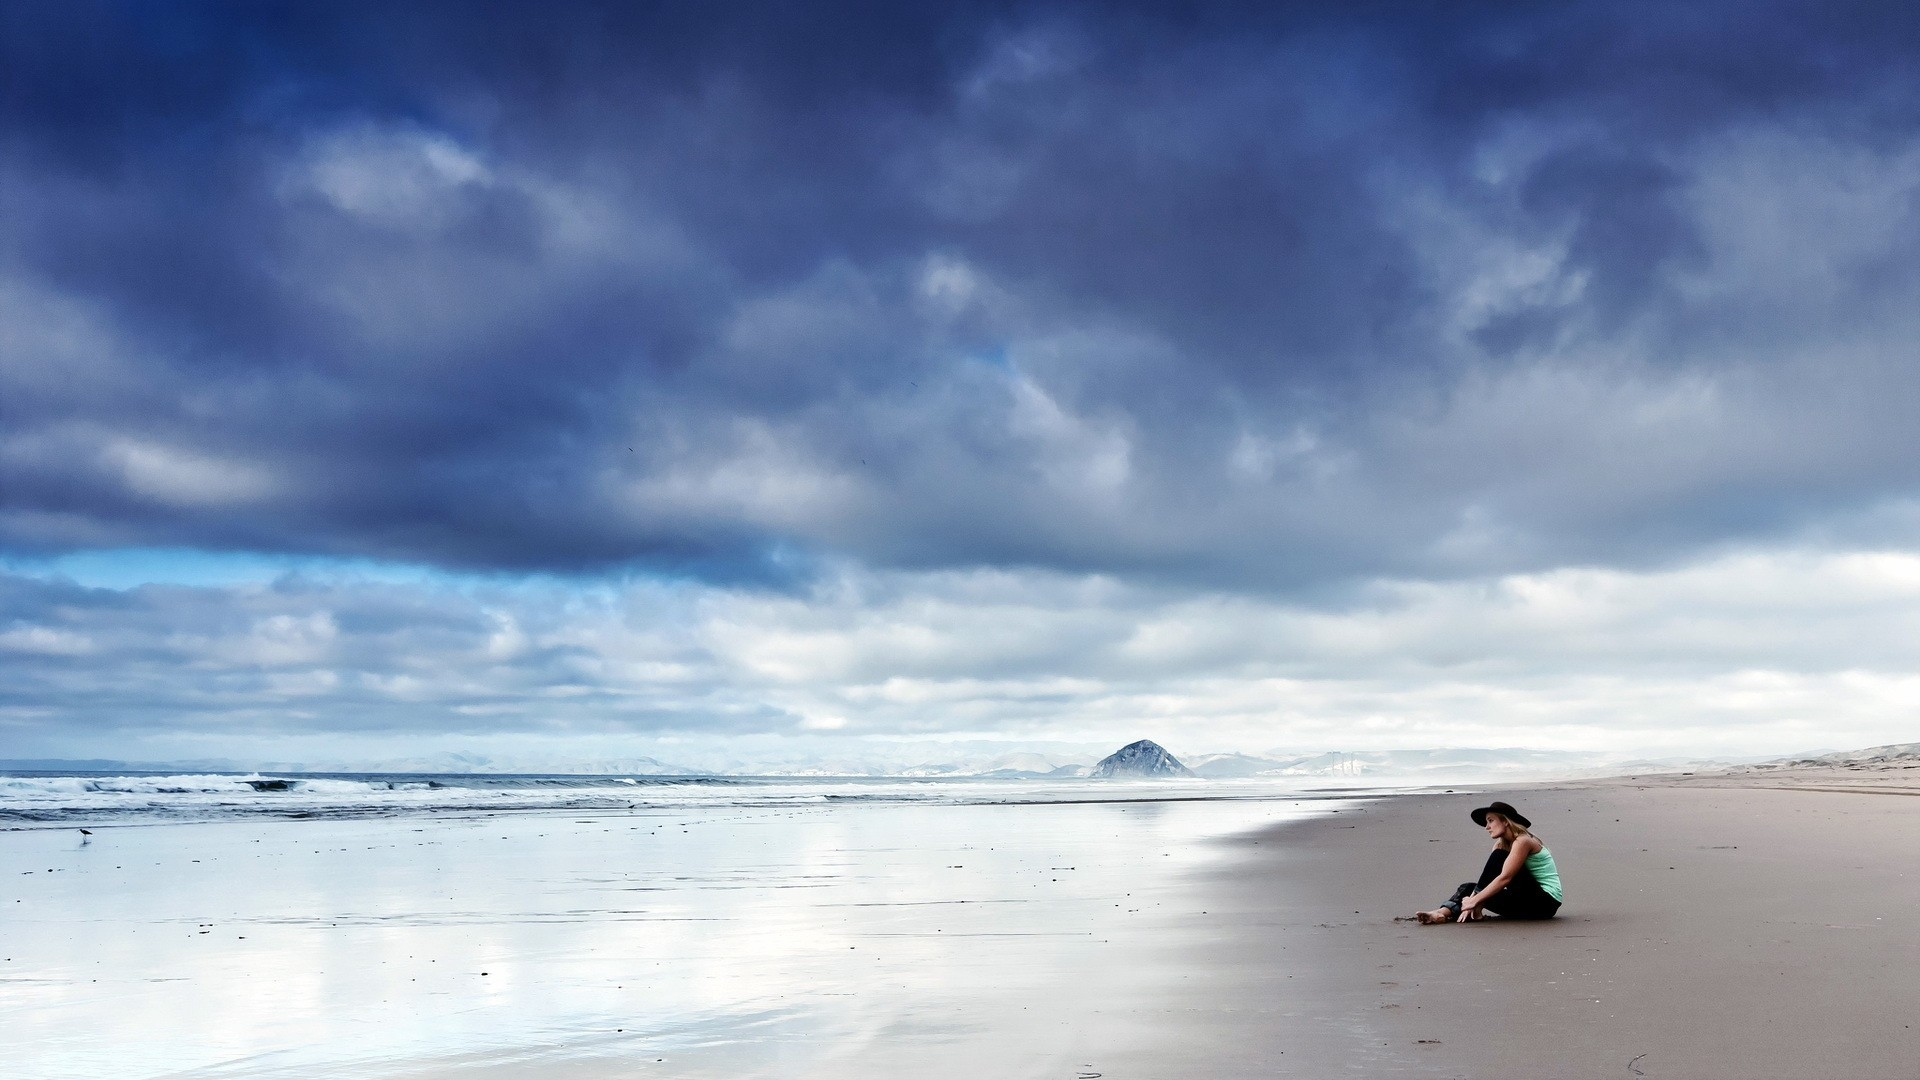 Sad and lonely wallpaper 59 images - Beach girl wallpaper hd ...